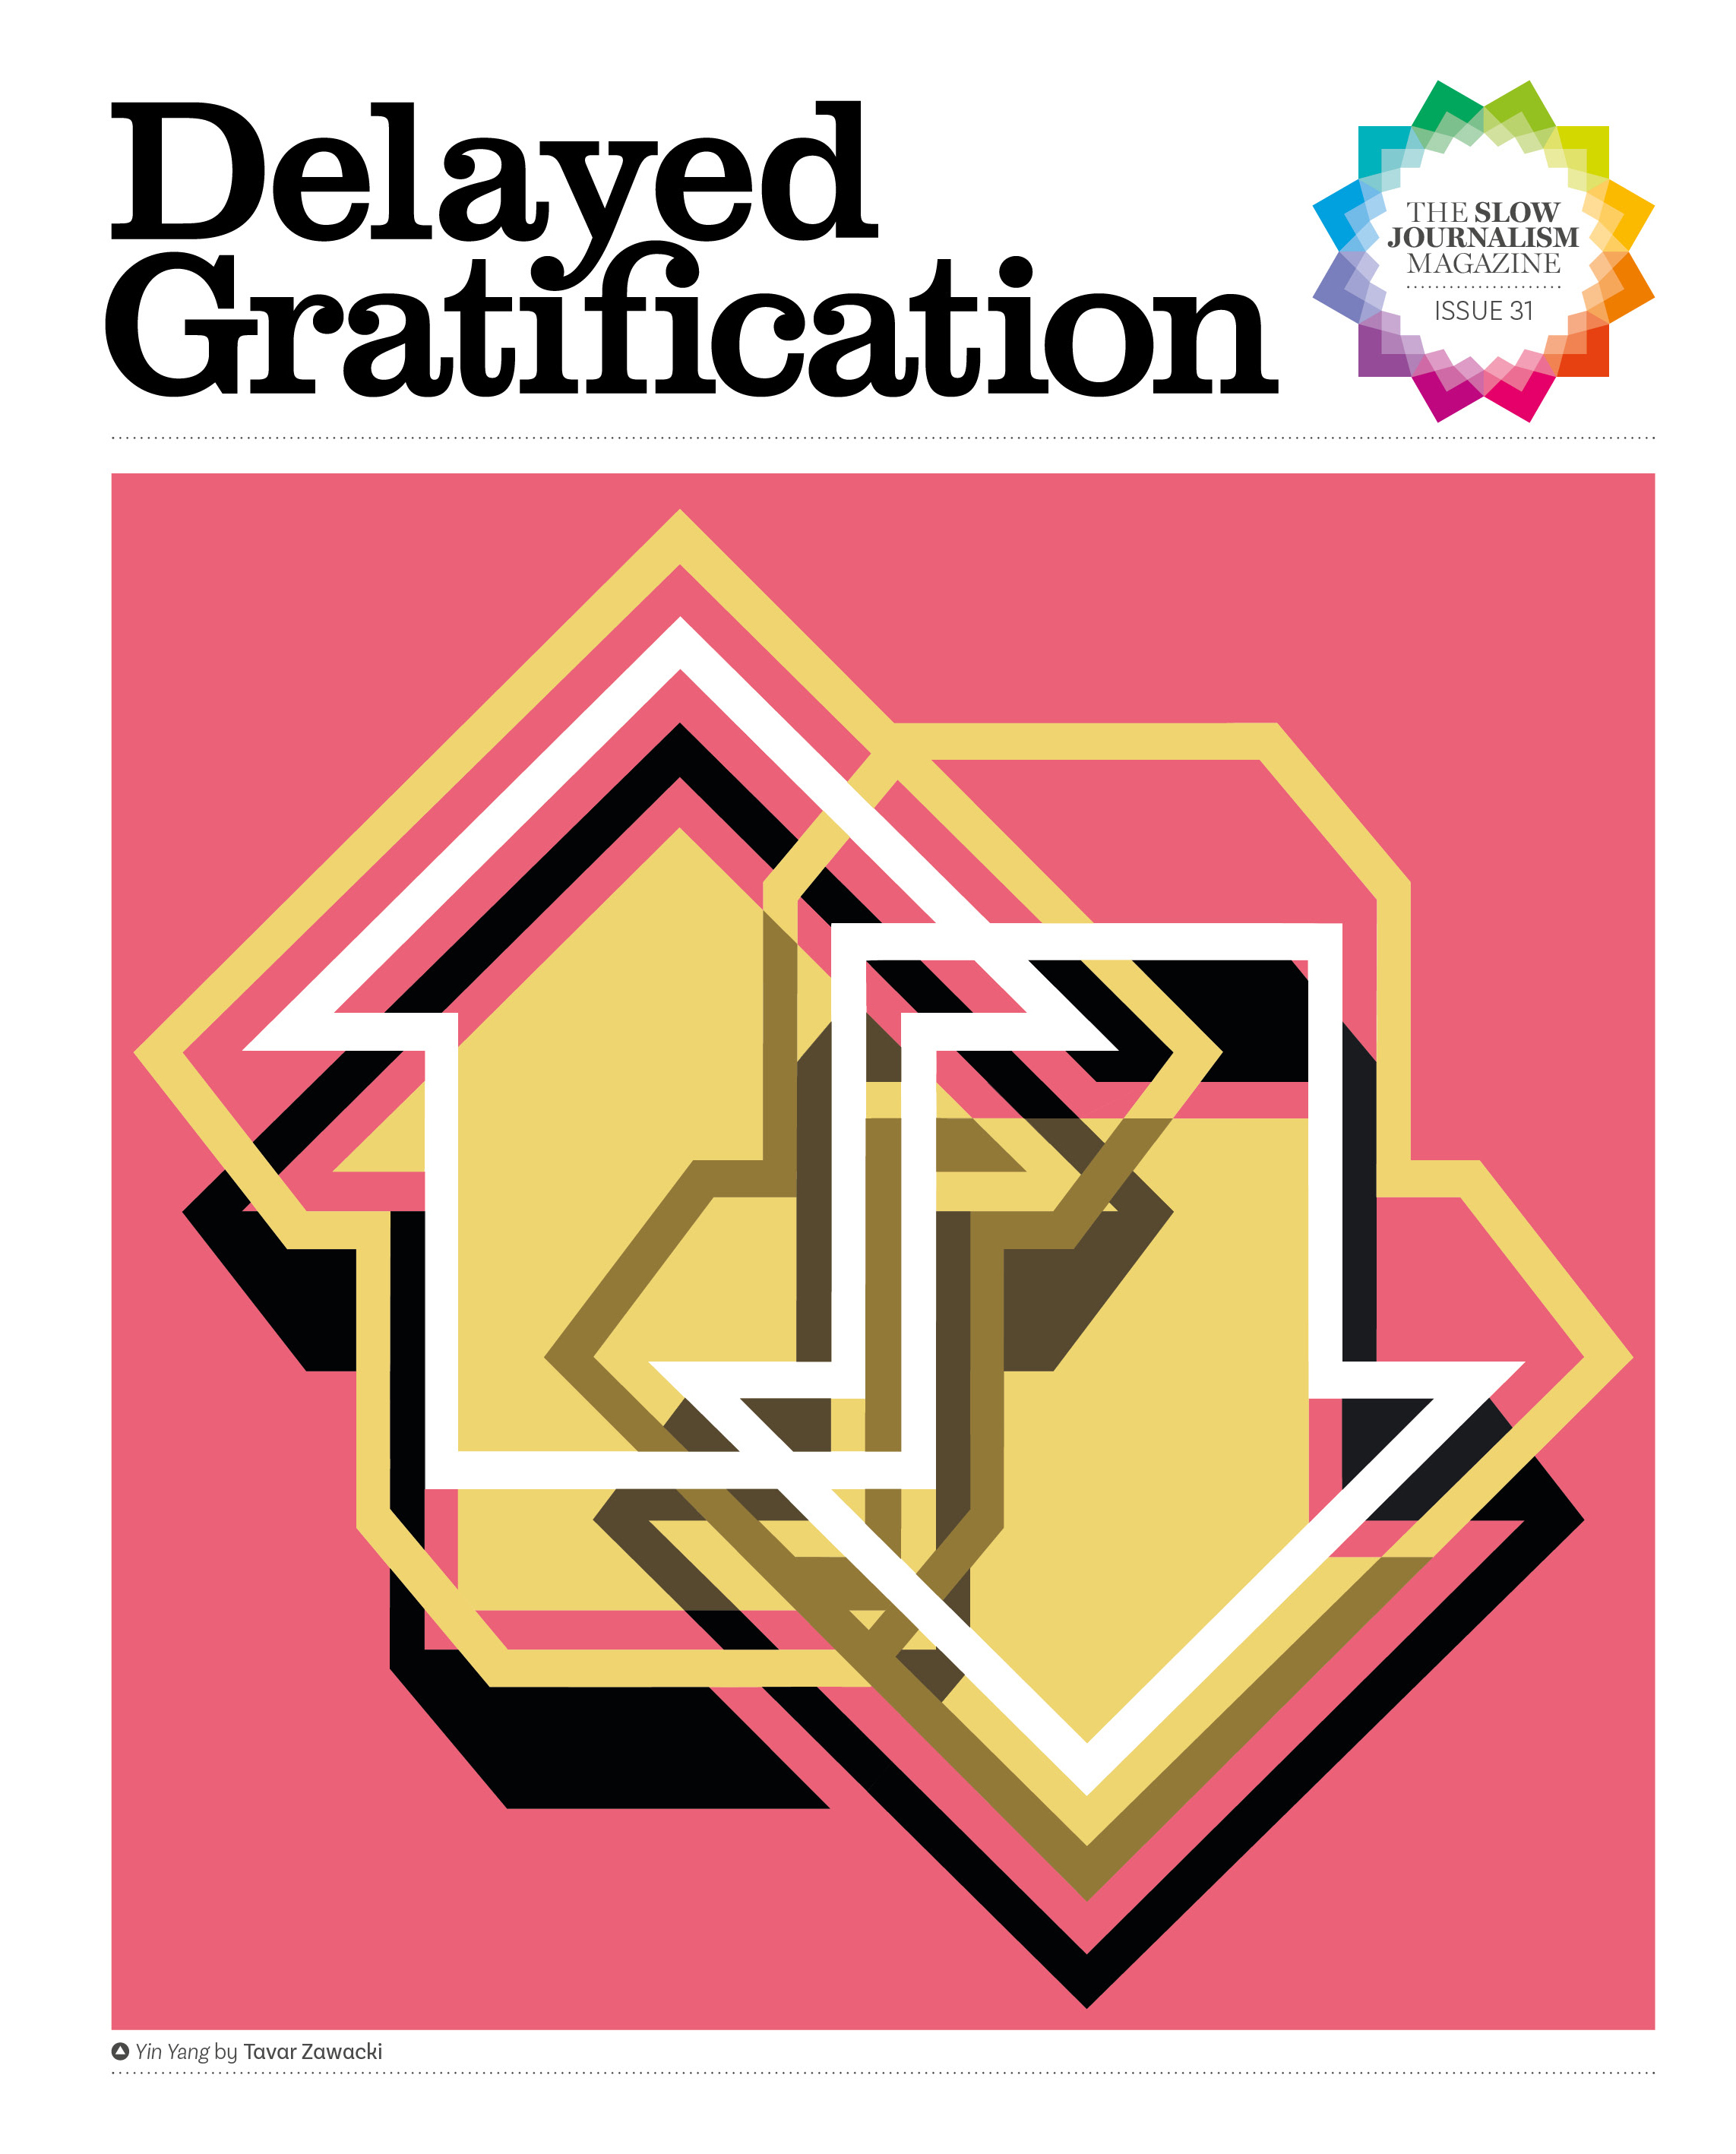 """Ra & Olly have worked tirelessly on our behalf. They have a first class London network which has allowed us to get our magazine into all the key places we want in the capital. Highly recommended!"" - Rob Orchard, EditorDelayed Gratification"